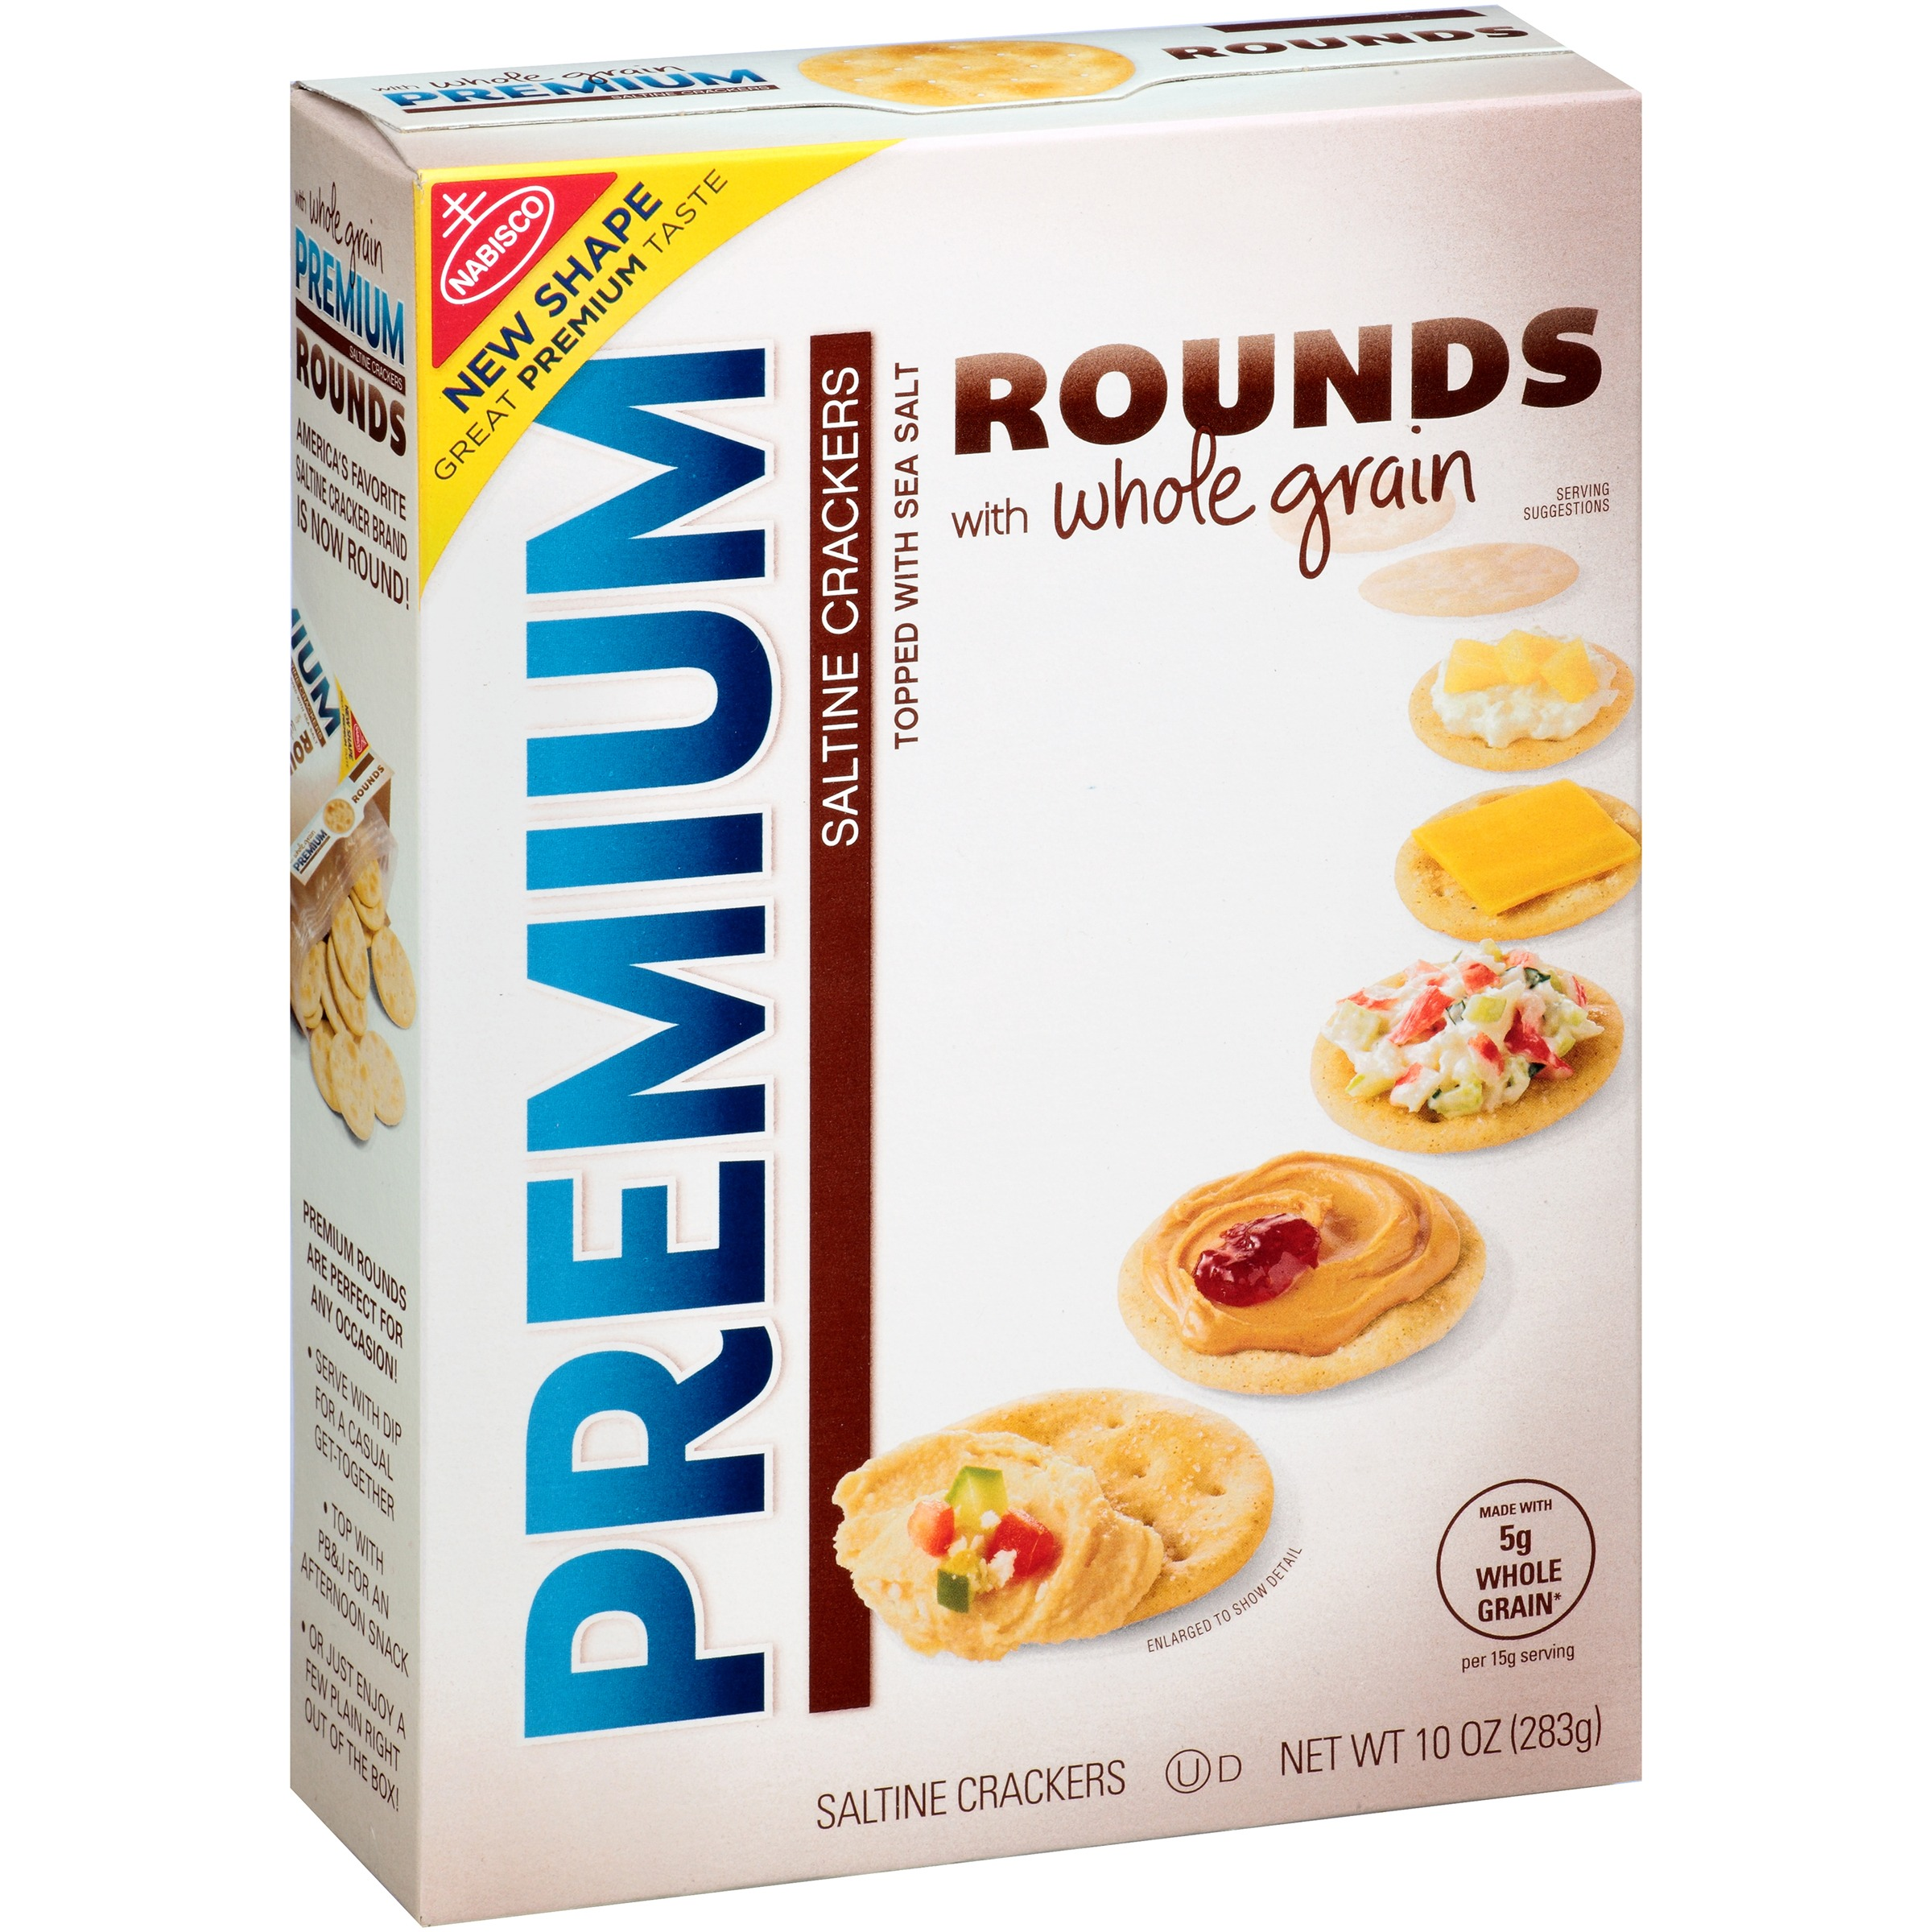 Nabisco Premium Rounds Whole Grain Saltine Crackers, 10 oz